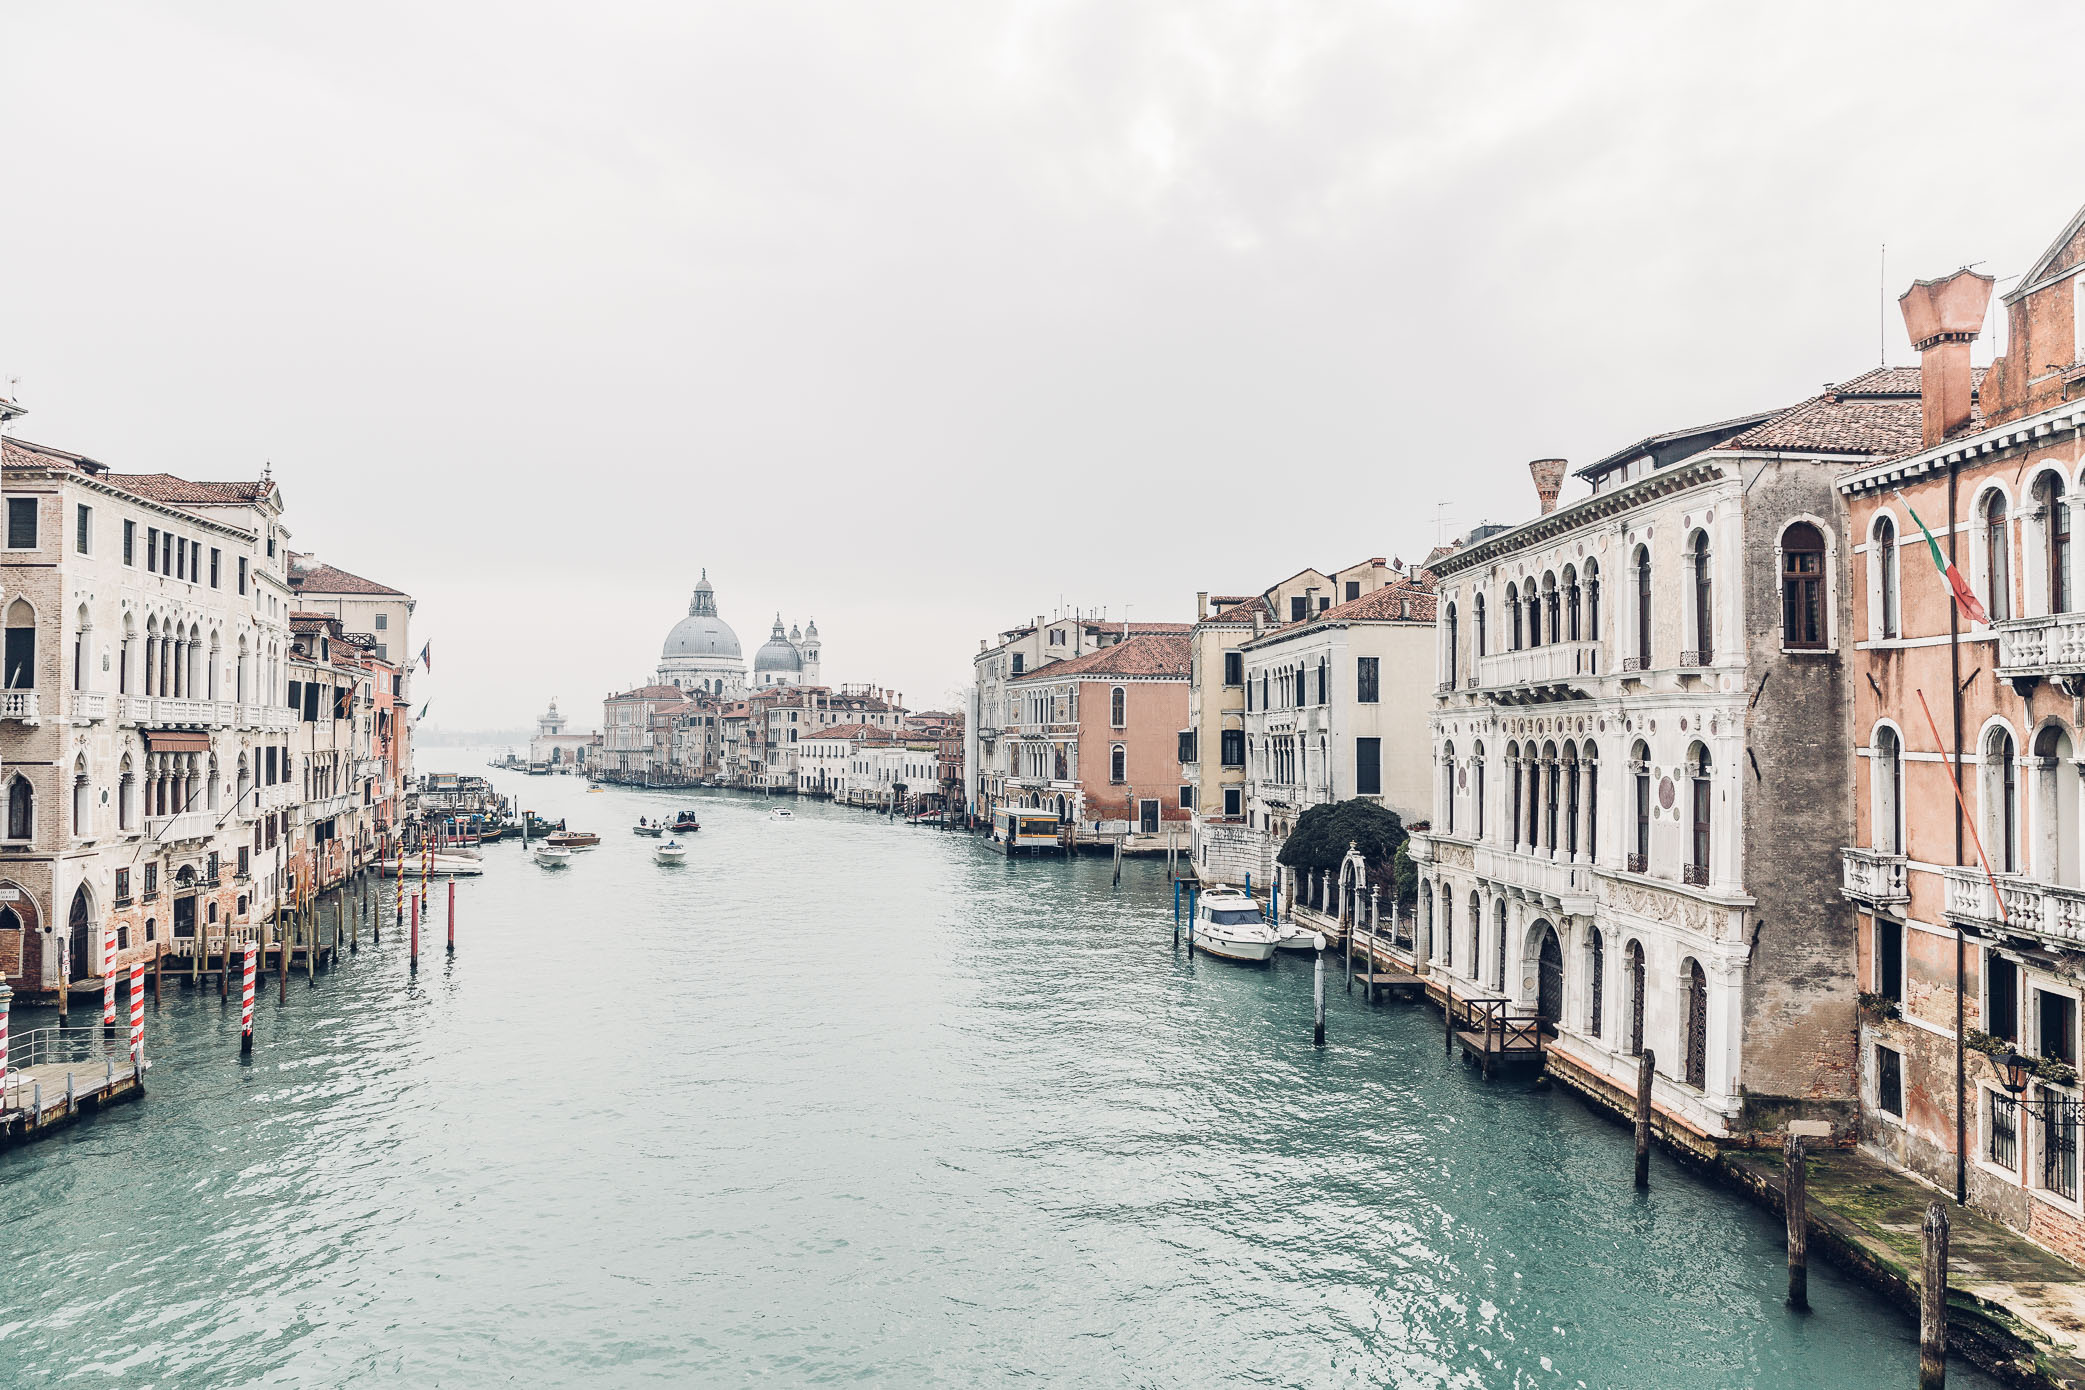 Ponte dell'Accademia, Stella McCartney, Raf Simons, Andy Wolf, Venice, A Day's March